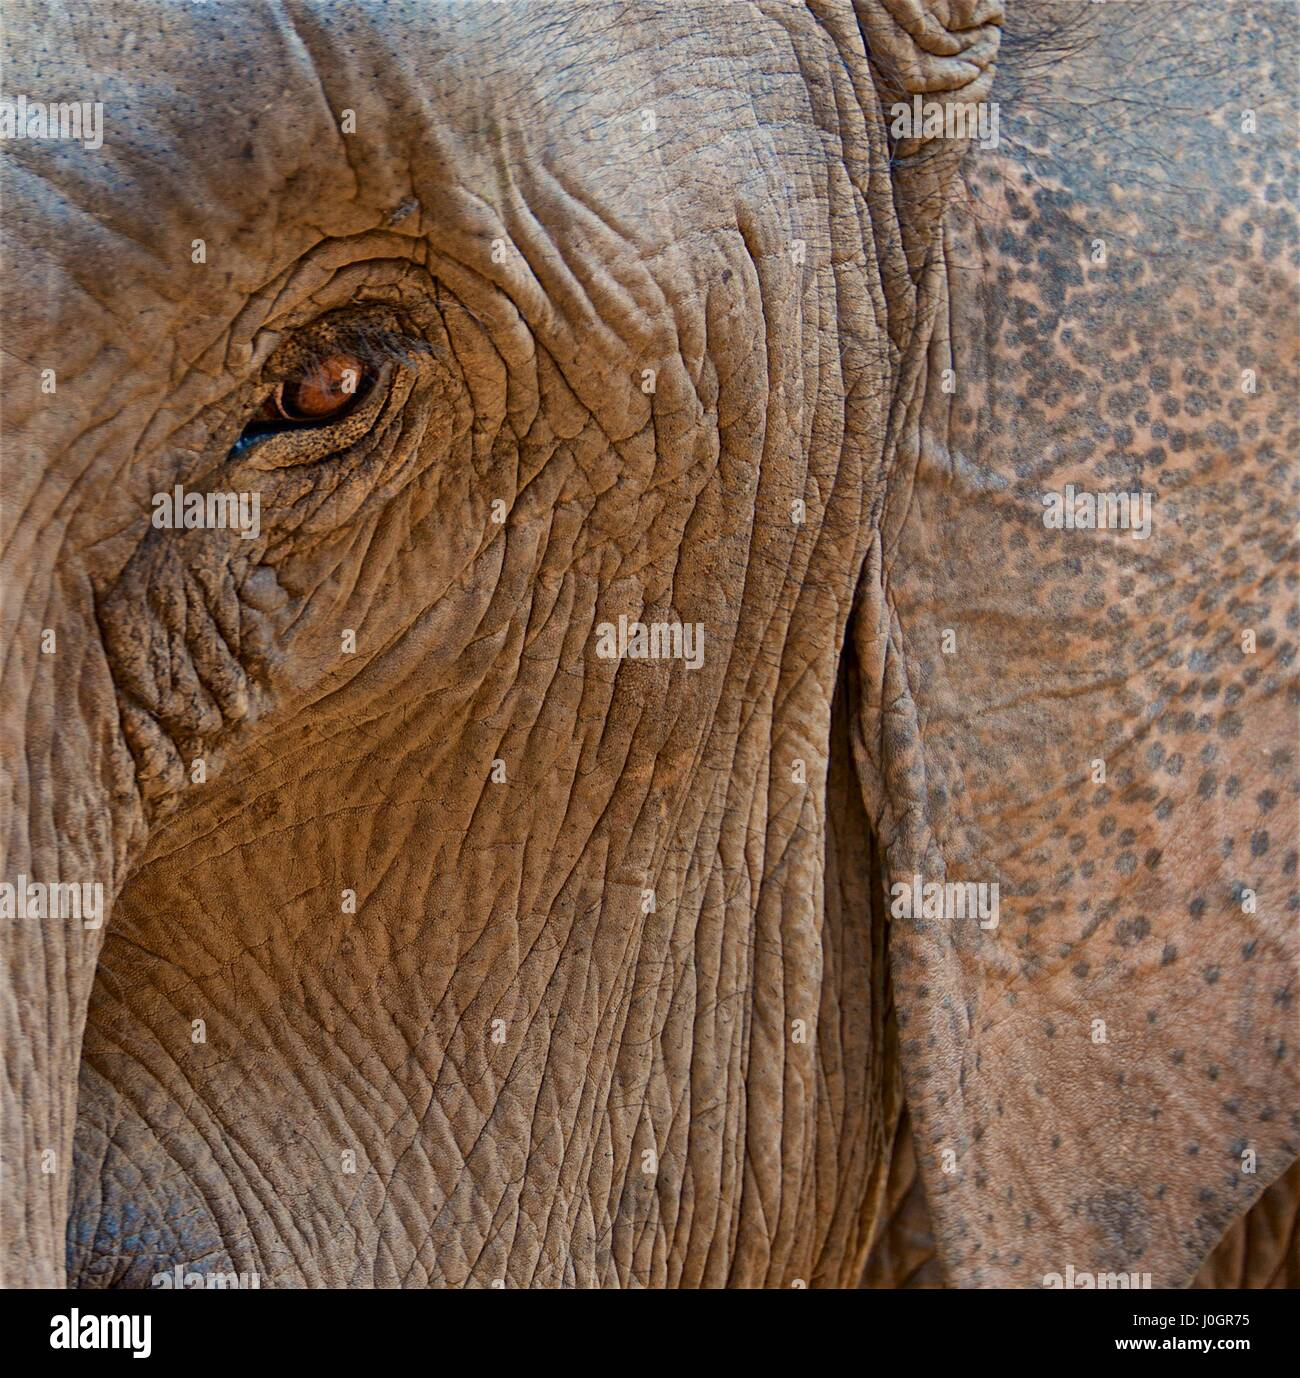 Elephant face with eye surrounded by wrinkles - Stock Image